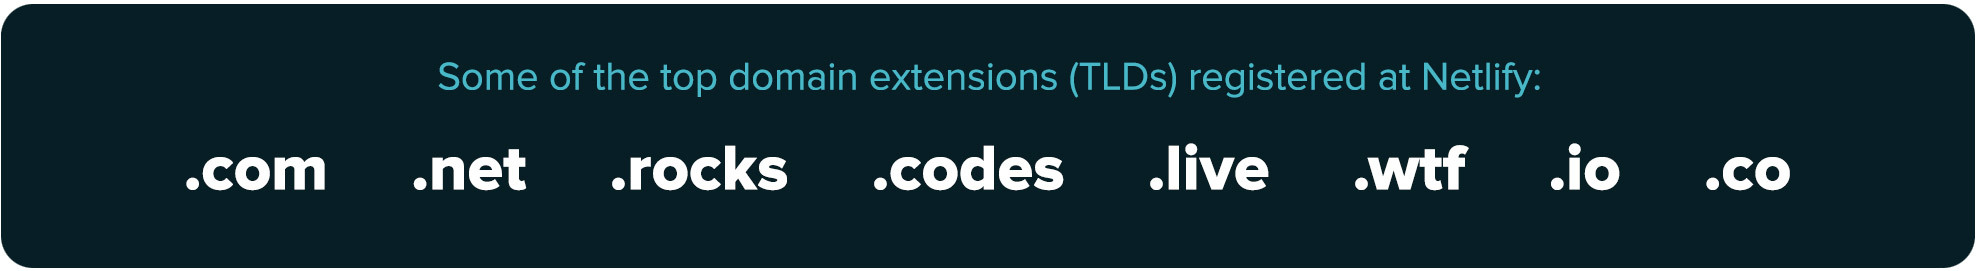 TLDs available to register on Netlify